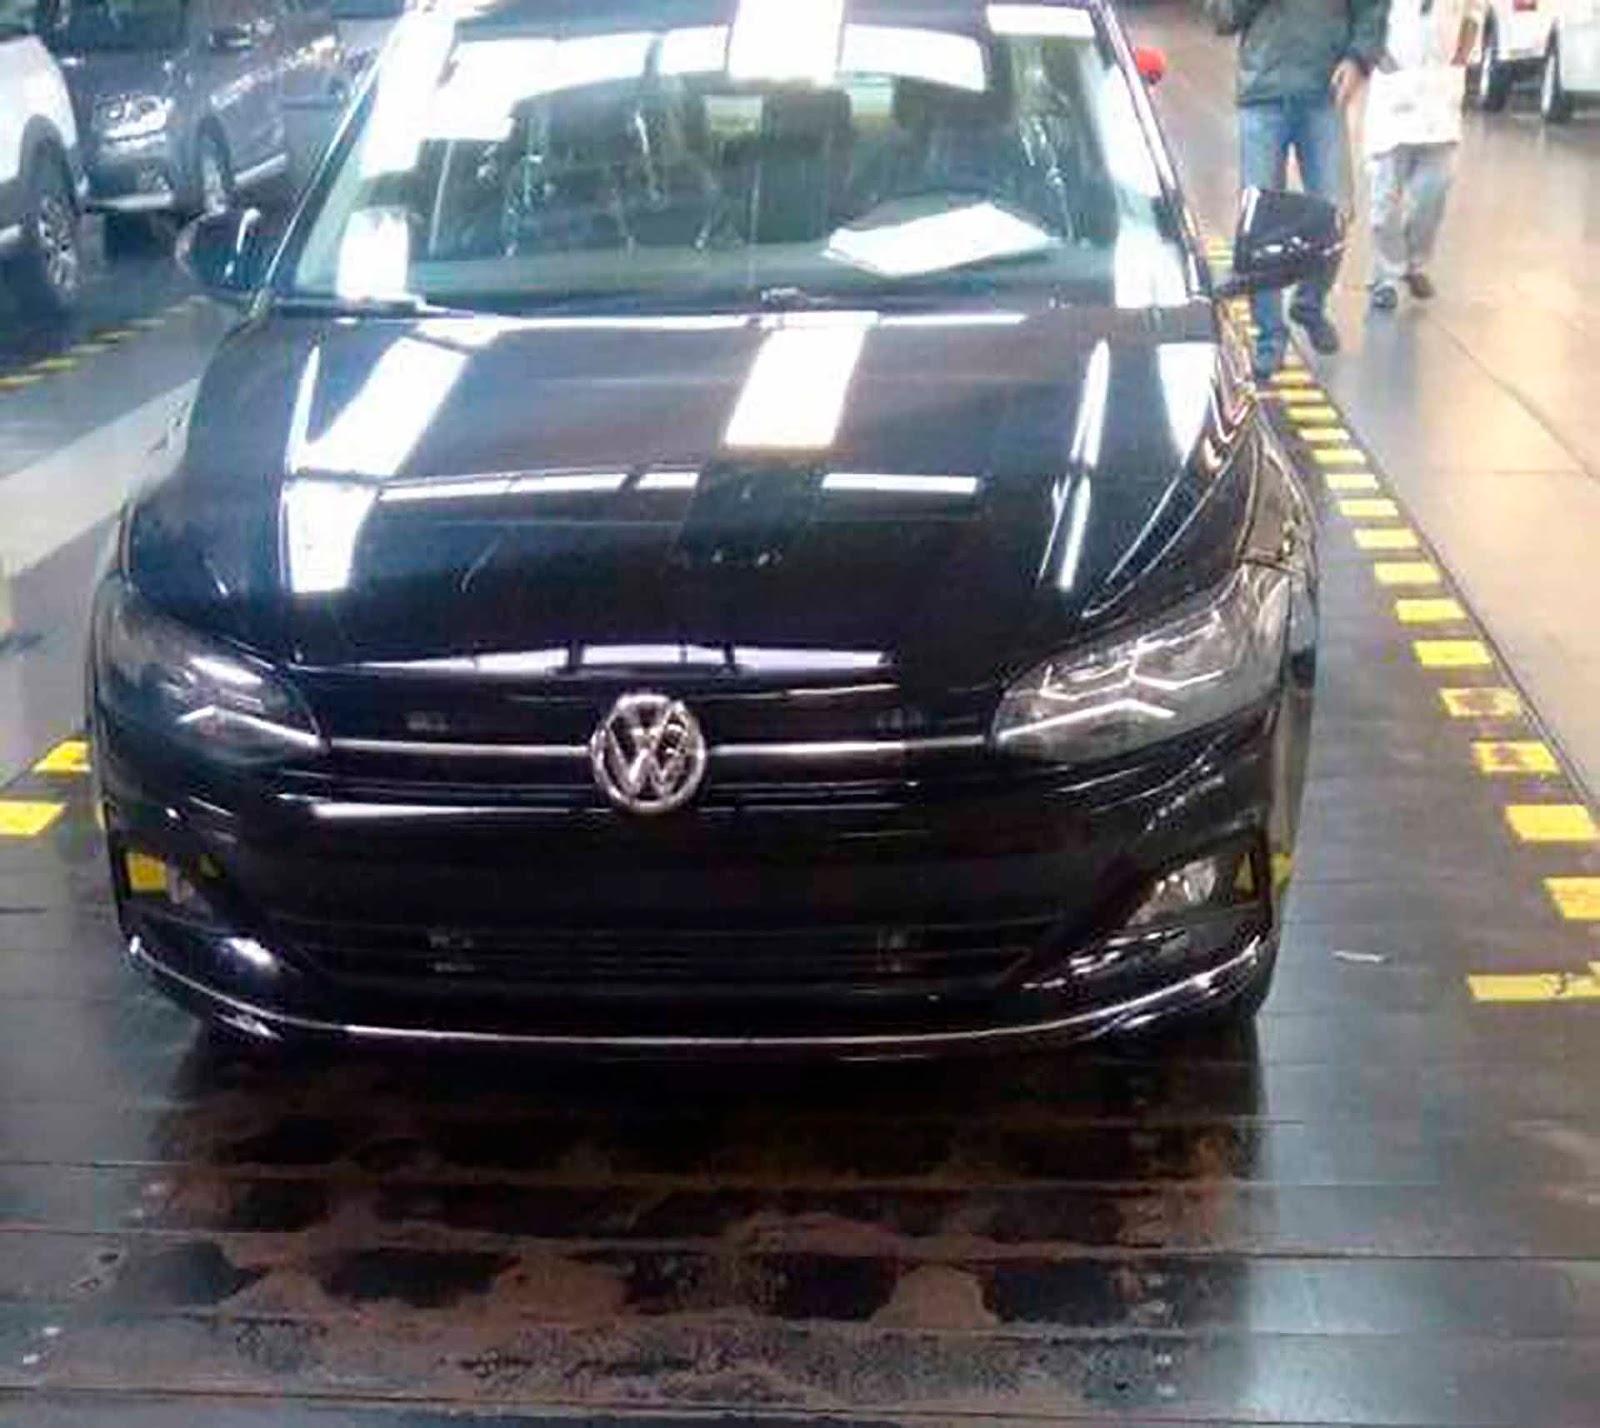 Polo Sedan further 2009 Frontal5725 moreover Vw Passat B8 20 Bitdi 240 Hp Acceleration Test Very Impressive Video 87586 besides New 2015 Volkswagen Vento 1 5 Diesel Facelift Review Refined Renovation as well Vw Arteon Four Door Coupe Debuts Bold New Style 06477212. on new vw sedan